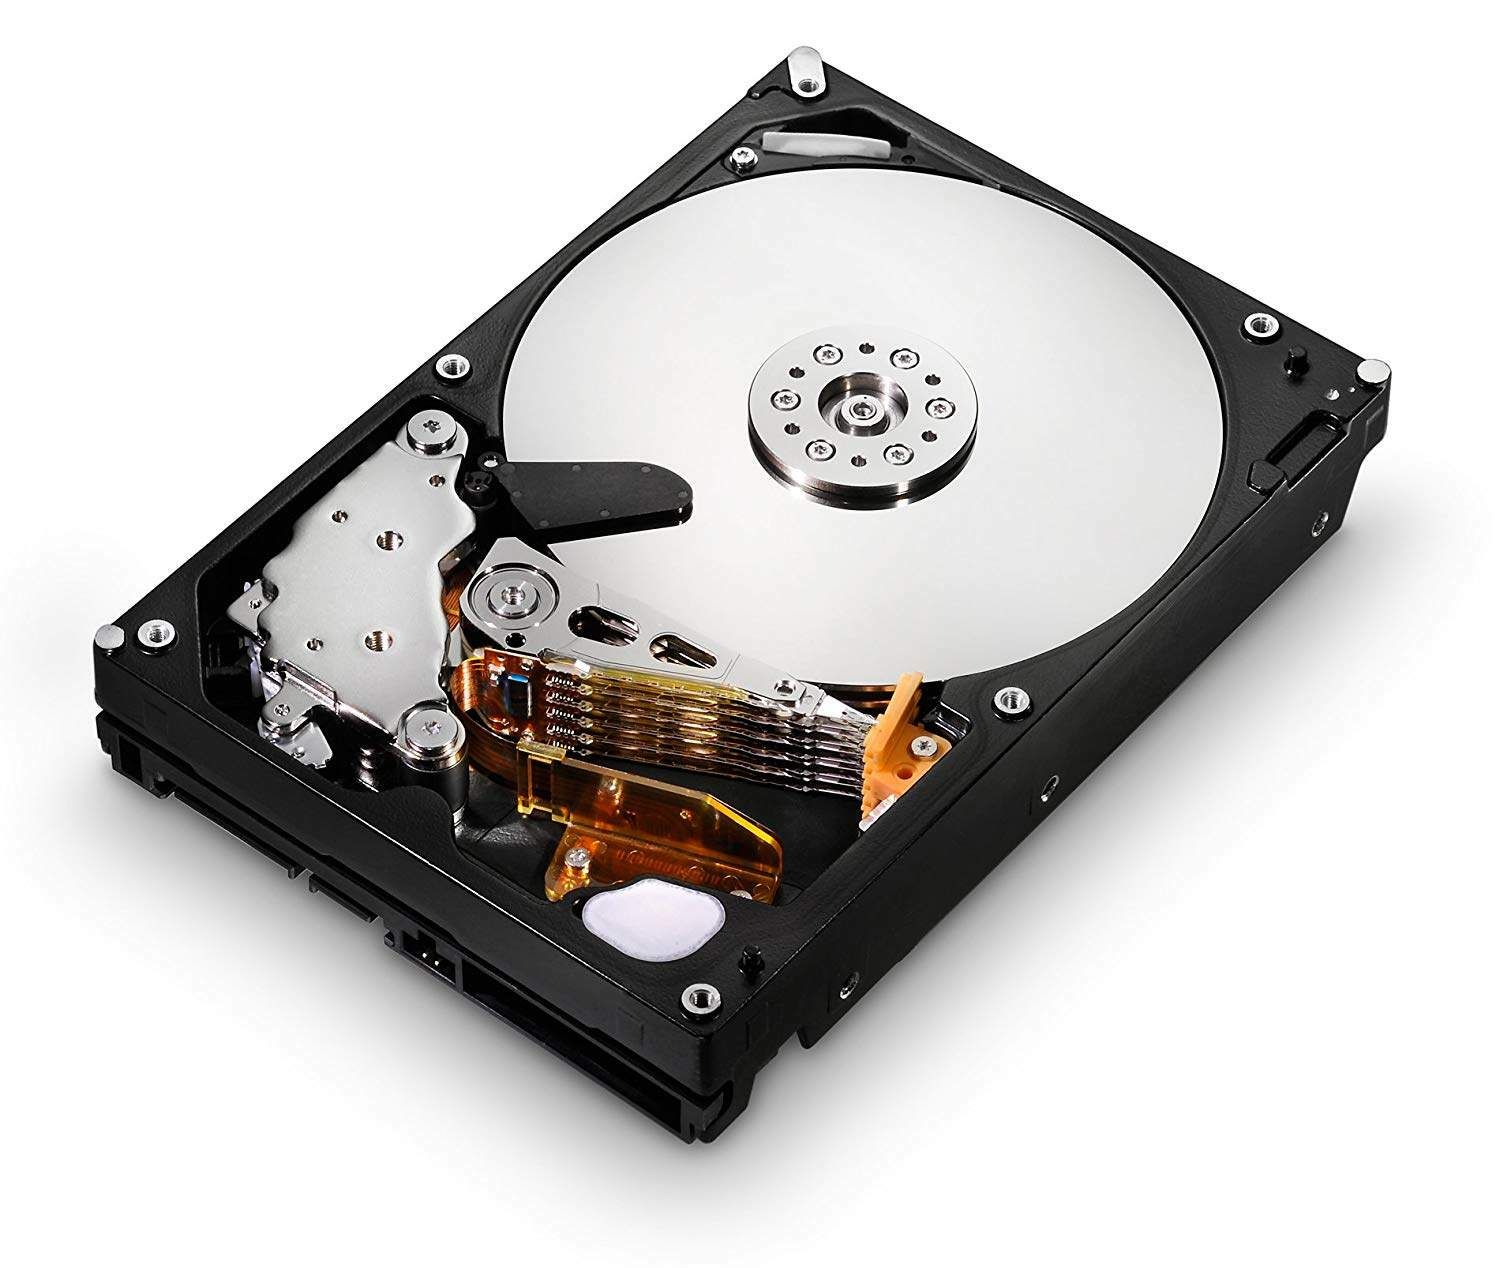 HD Interno 250GB Western Digital 7200 RPM WD2500AVVS 3.5 Green Power SATA 3gb/s